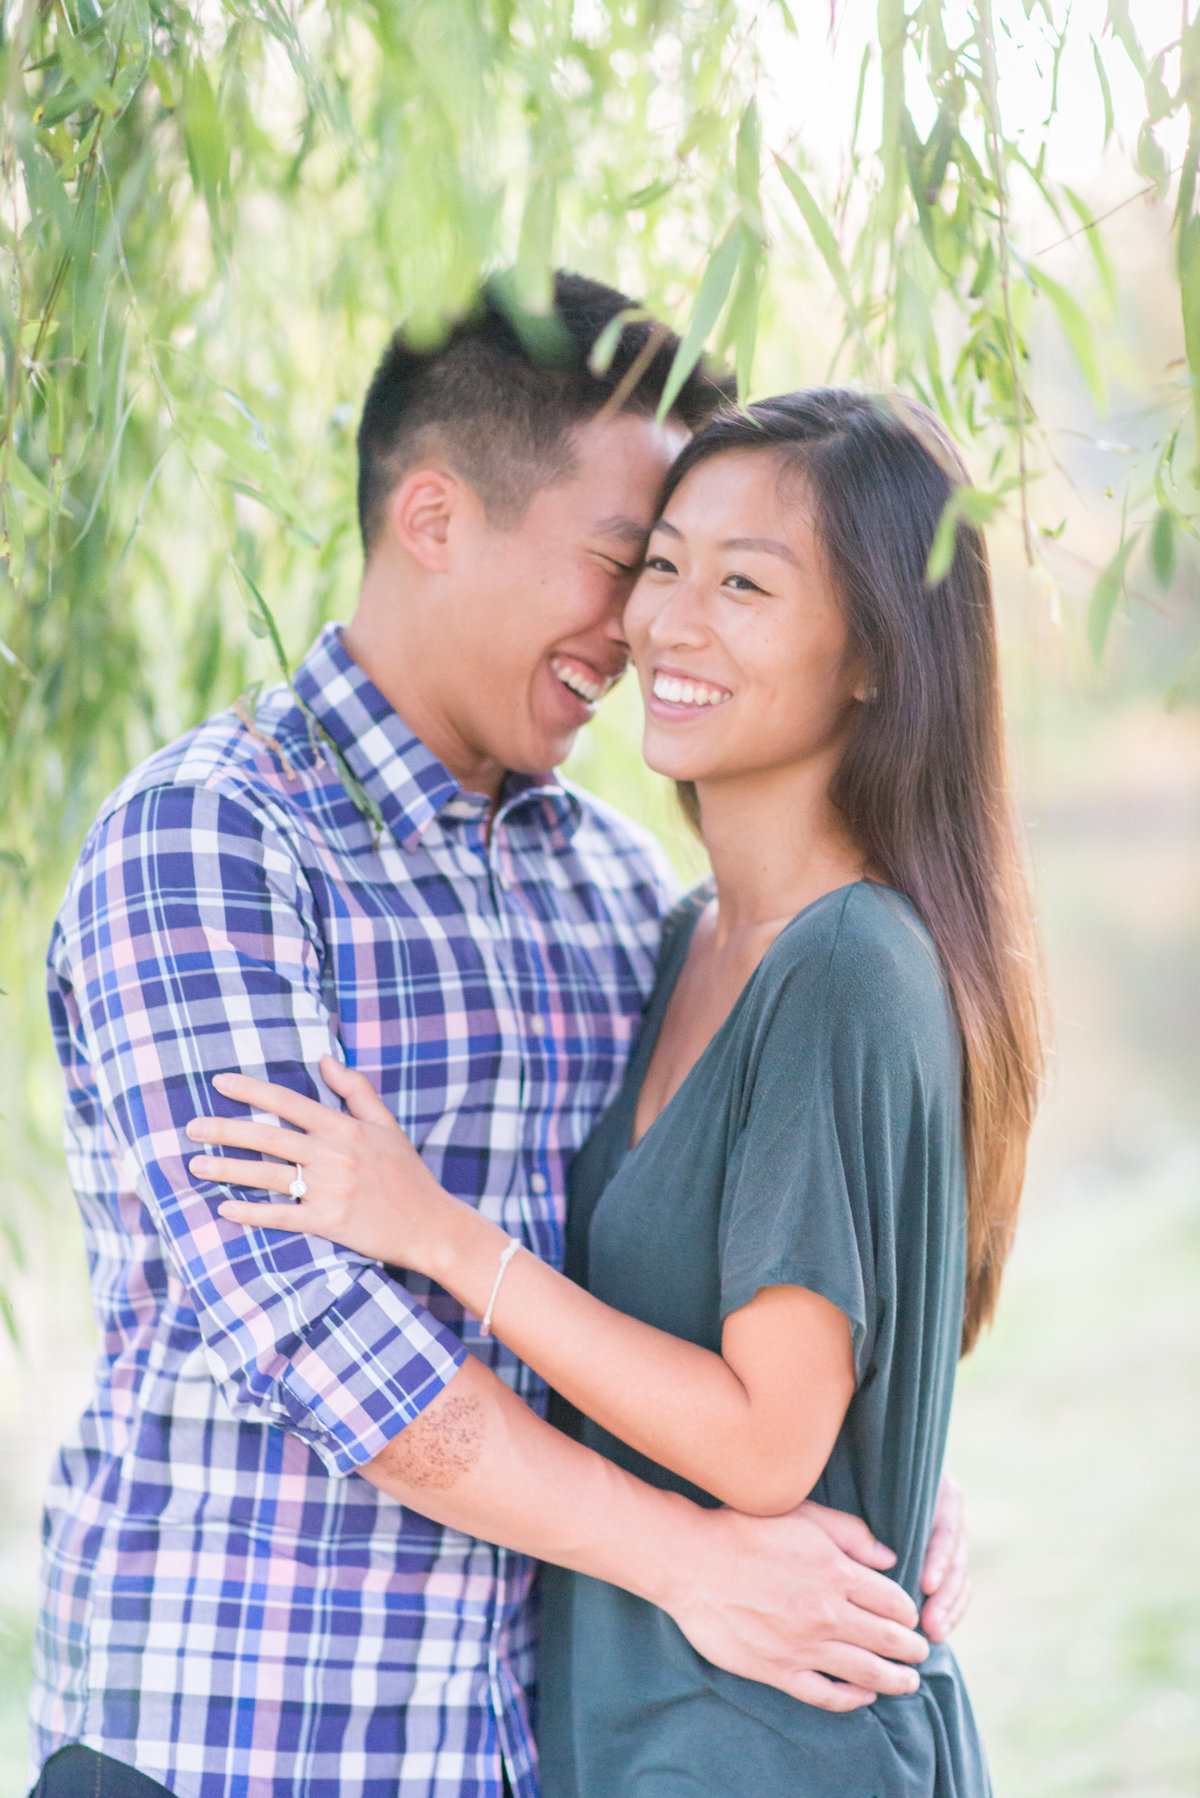 Baker Park Frederick MD Engagement Shoot Wedding Photographer-